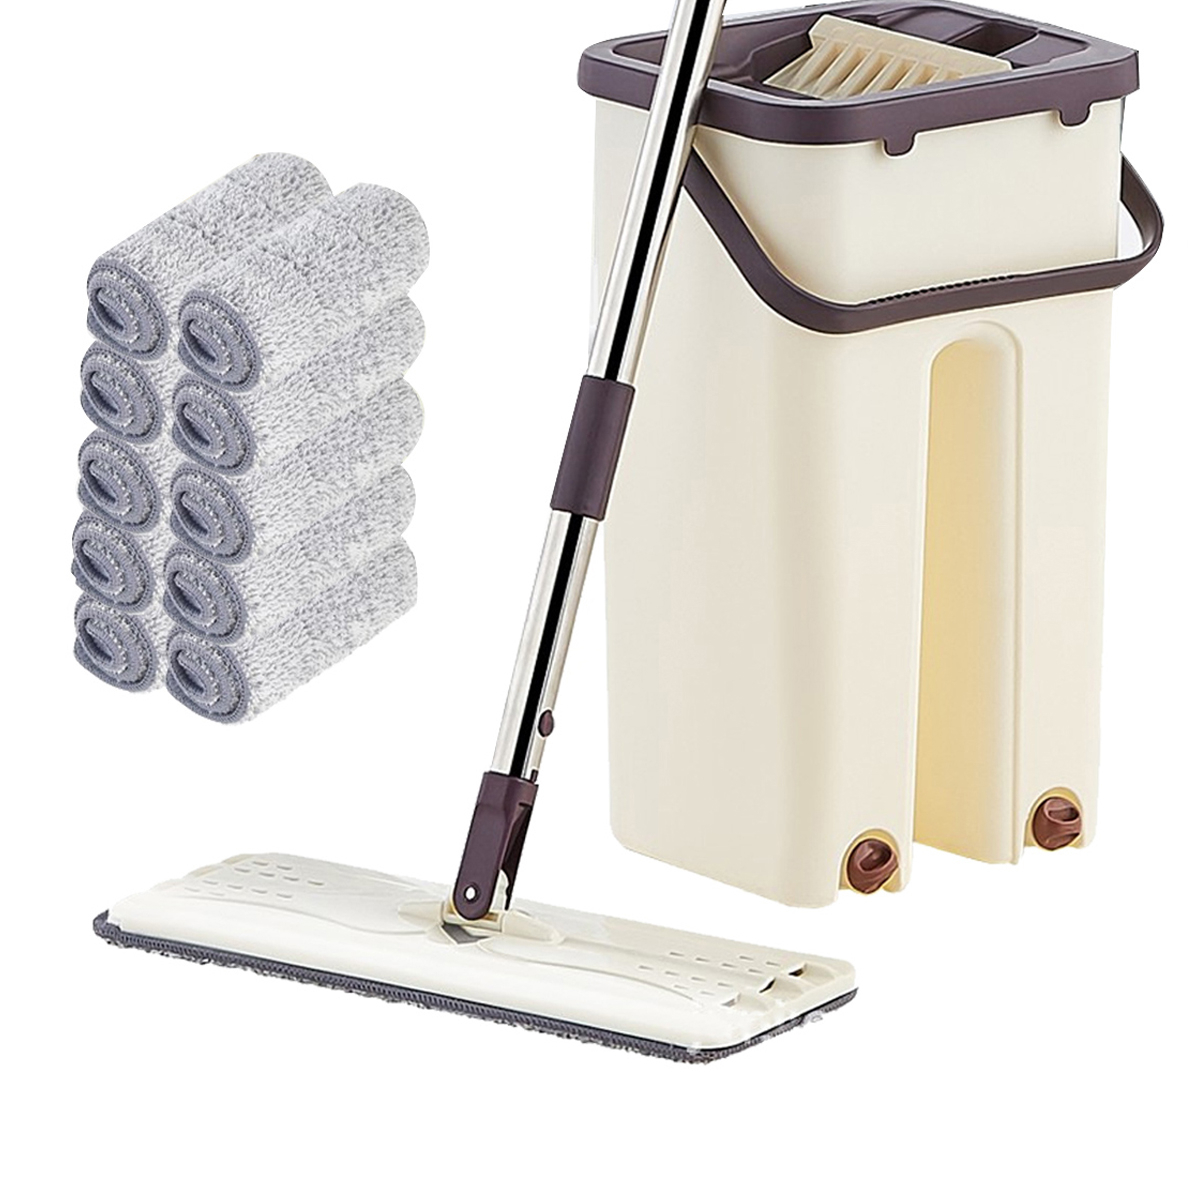 Hand-Free Wringing Floor Cleaning Mop Wet/Dry Magic Automatic Spin Self Cleaning - $13.38 - $41.36